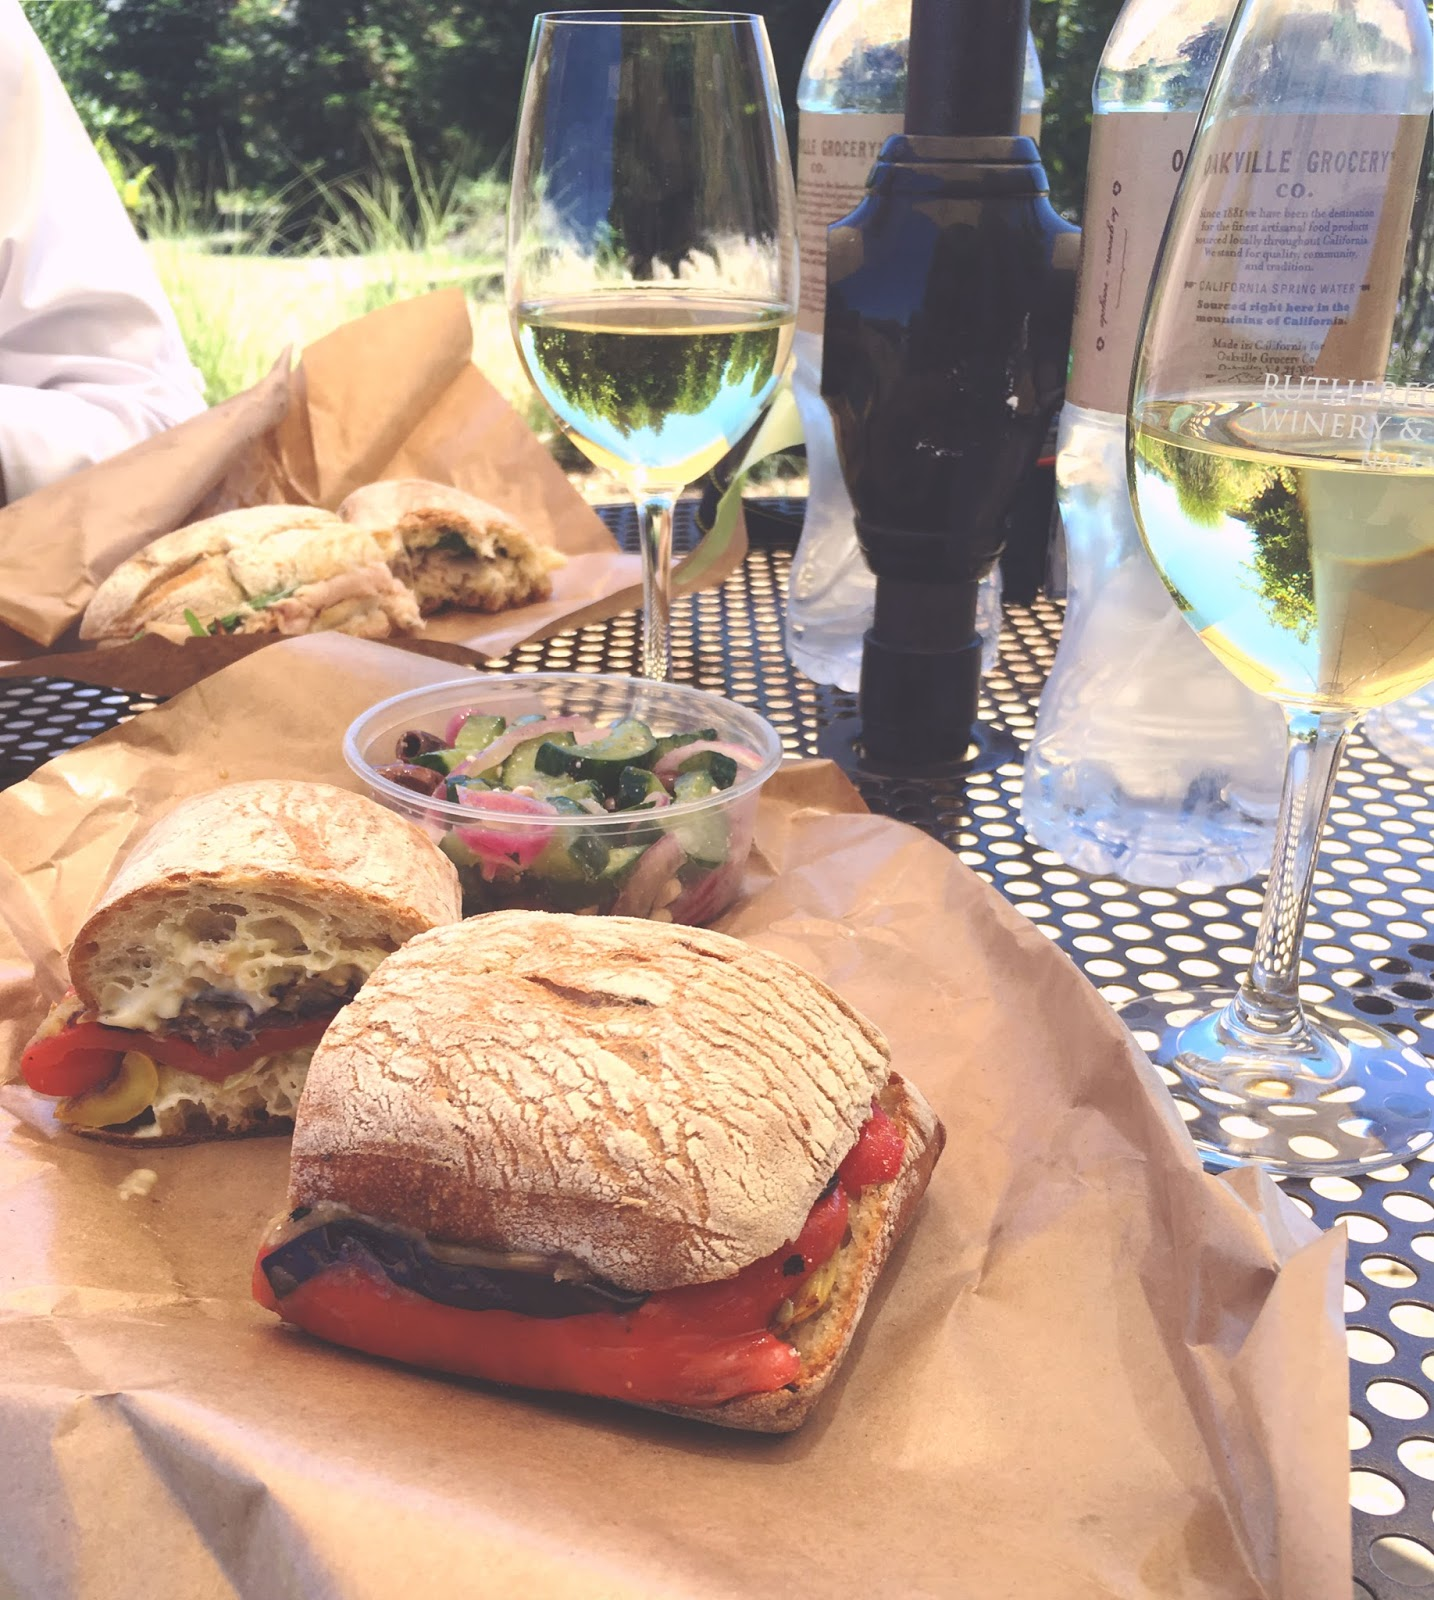 food and wine at Rutherford Grove Winery in Napa, California